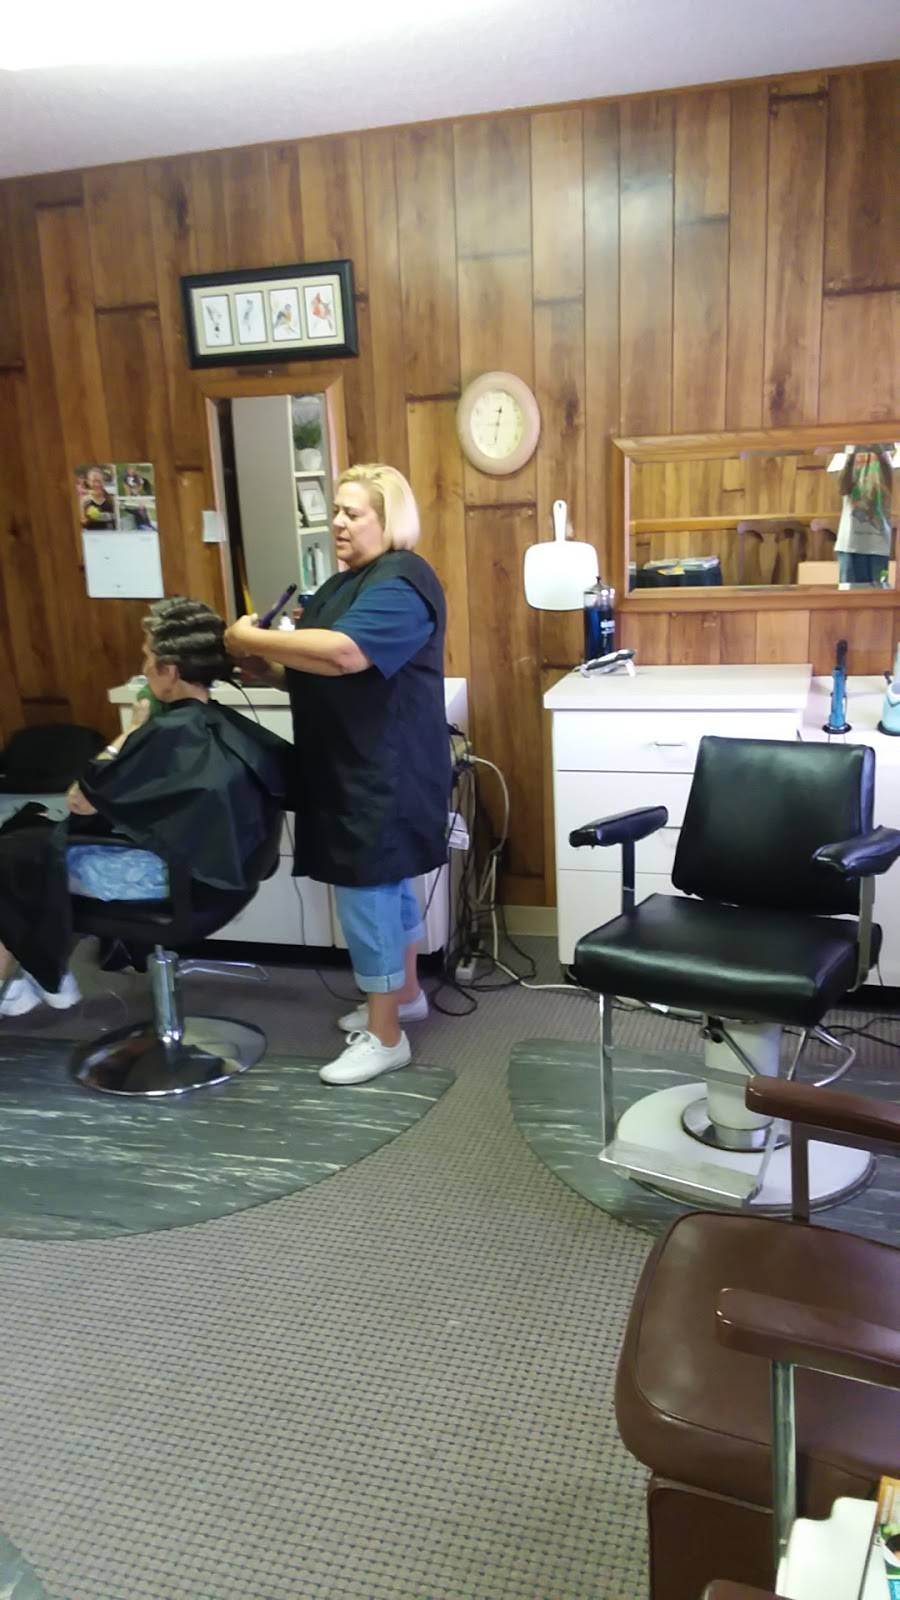 Fresh Cuts Beauty Salon - hair care  | Photo 1 of 2 | Address: 11311 Hickman Mills Dr, Kansas City, MO 64134, USA | Phone: (816) 589-4987